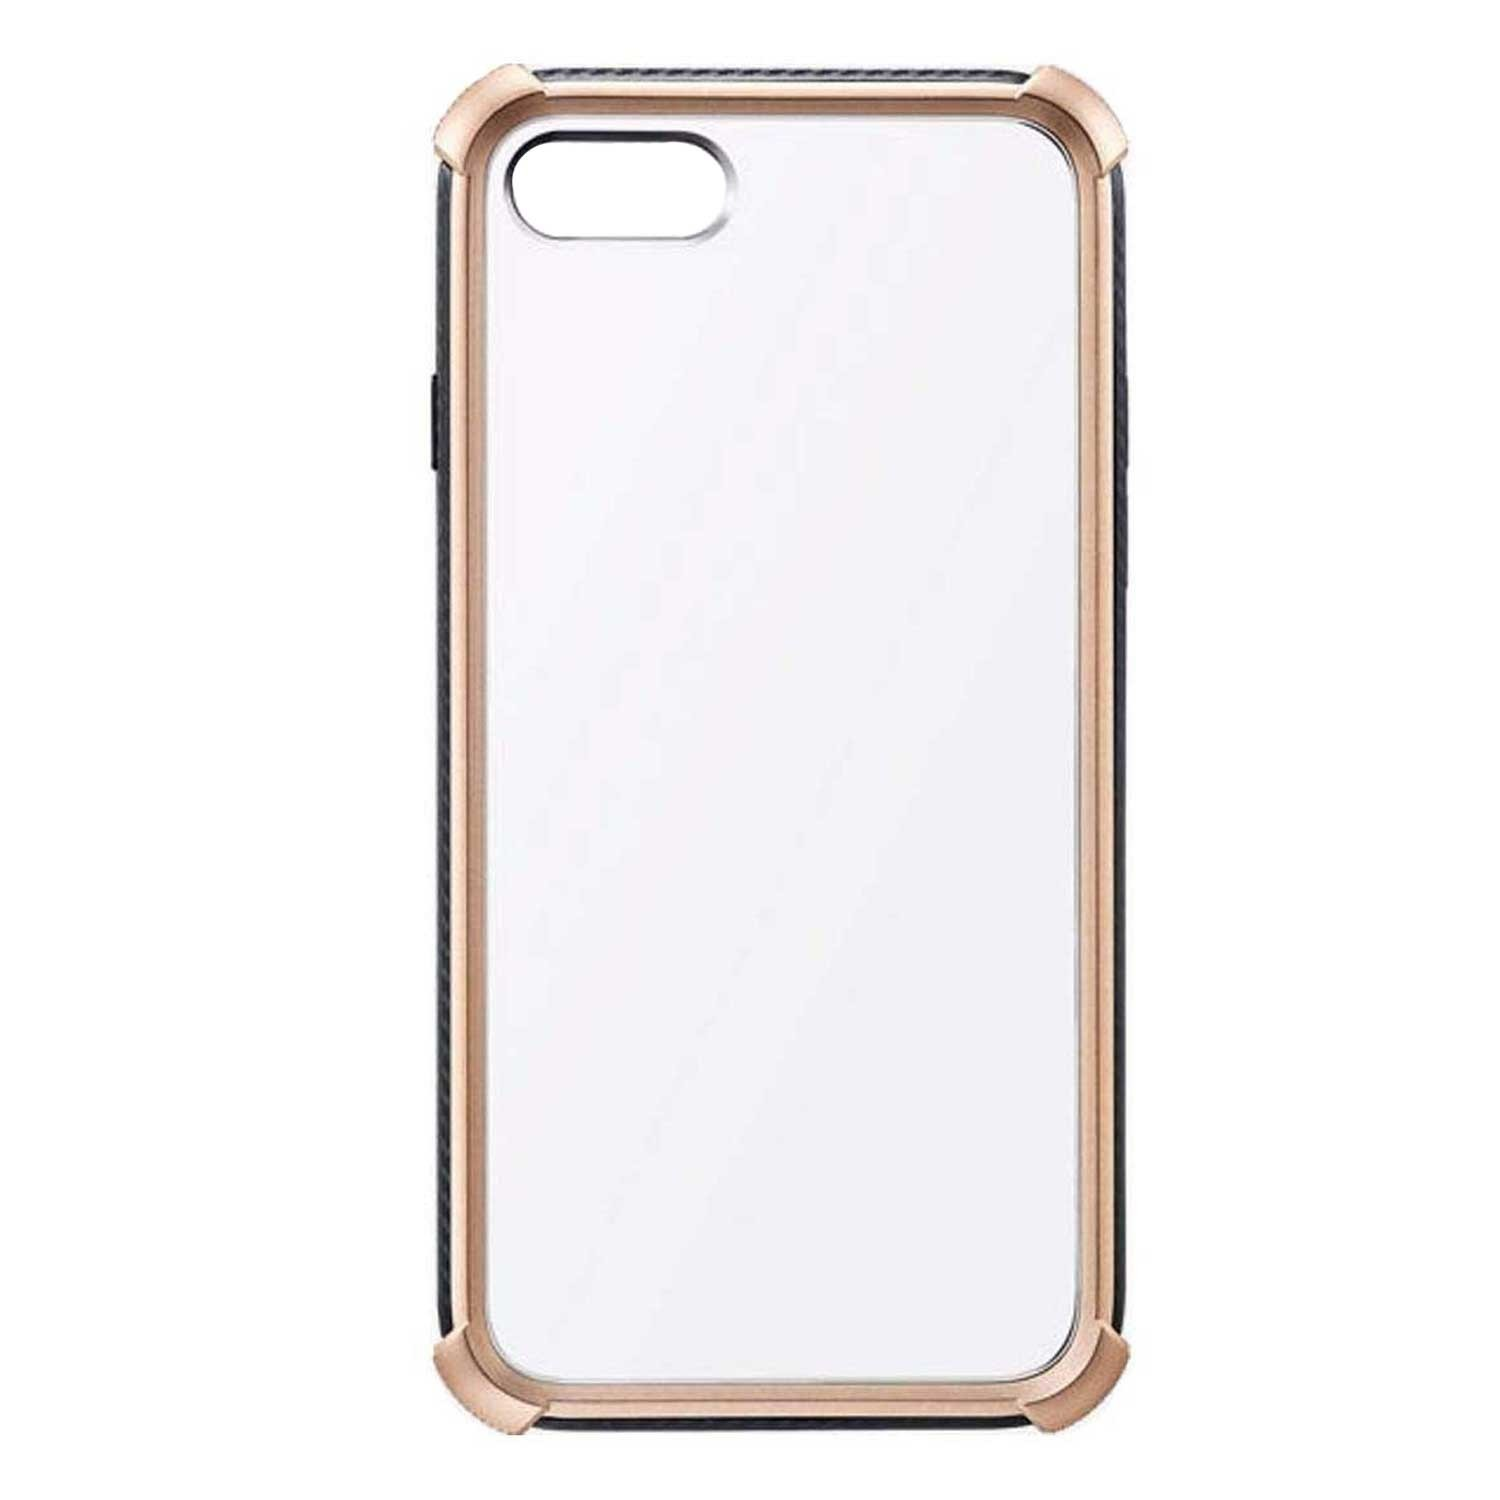 Case - MILK & HONEY for iPhone 8/7 clear with design